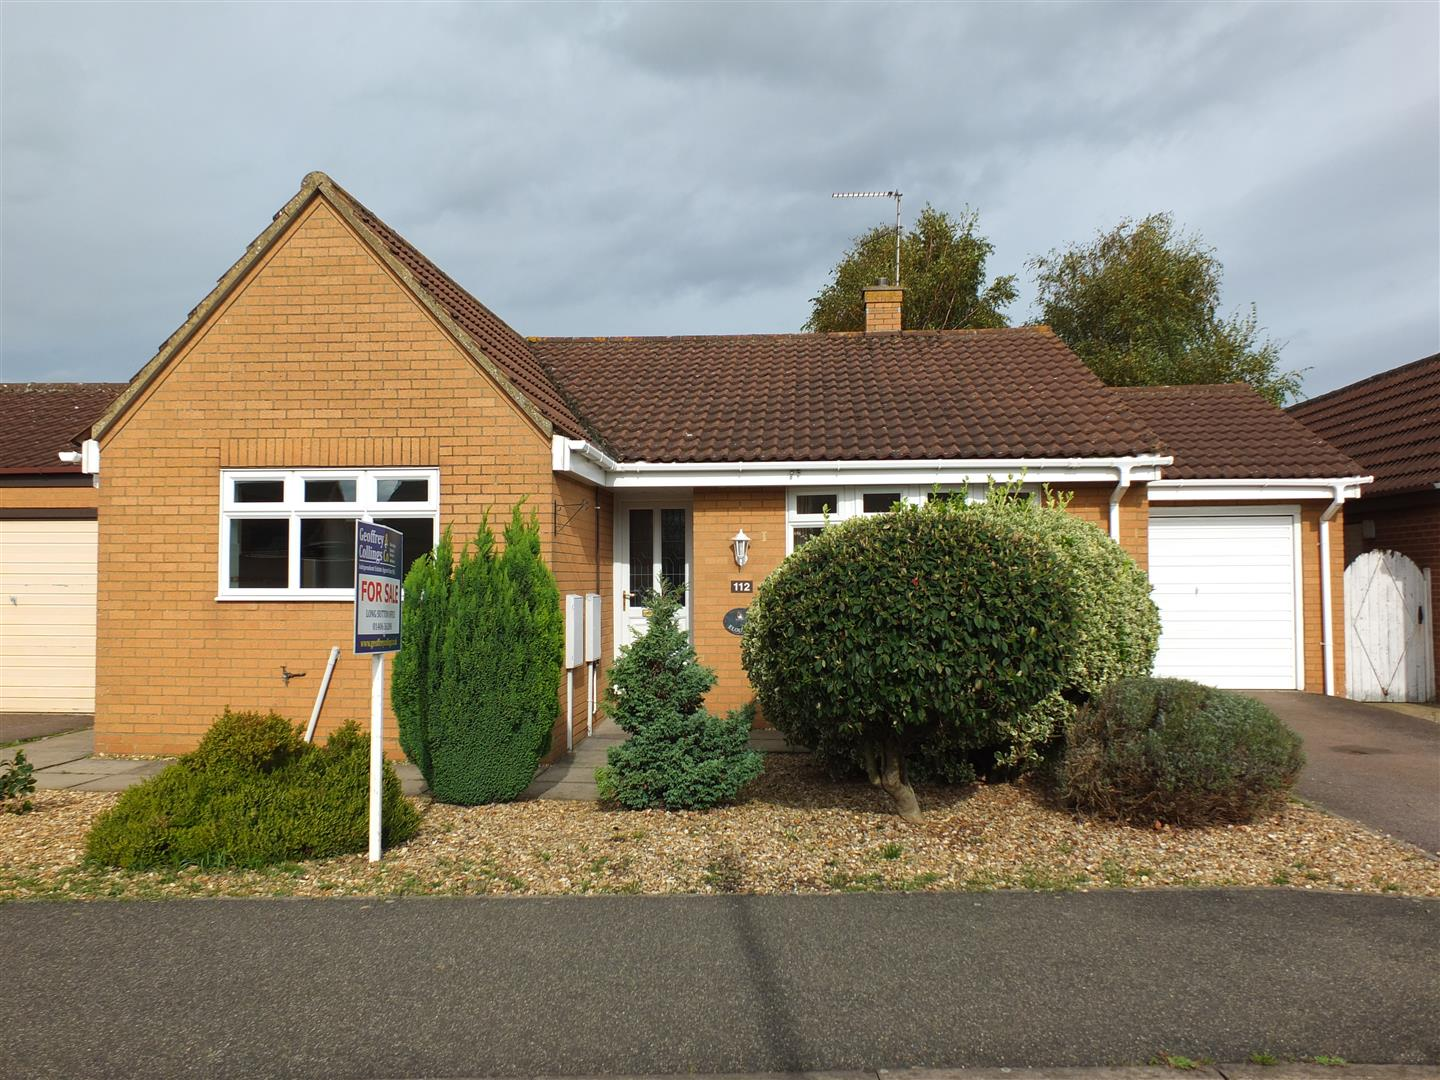 3 bed detached bungalow to rent in Sutton Bridge Spalding, PE12 9XQ, PE12